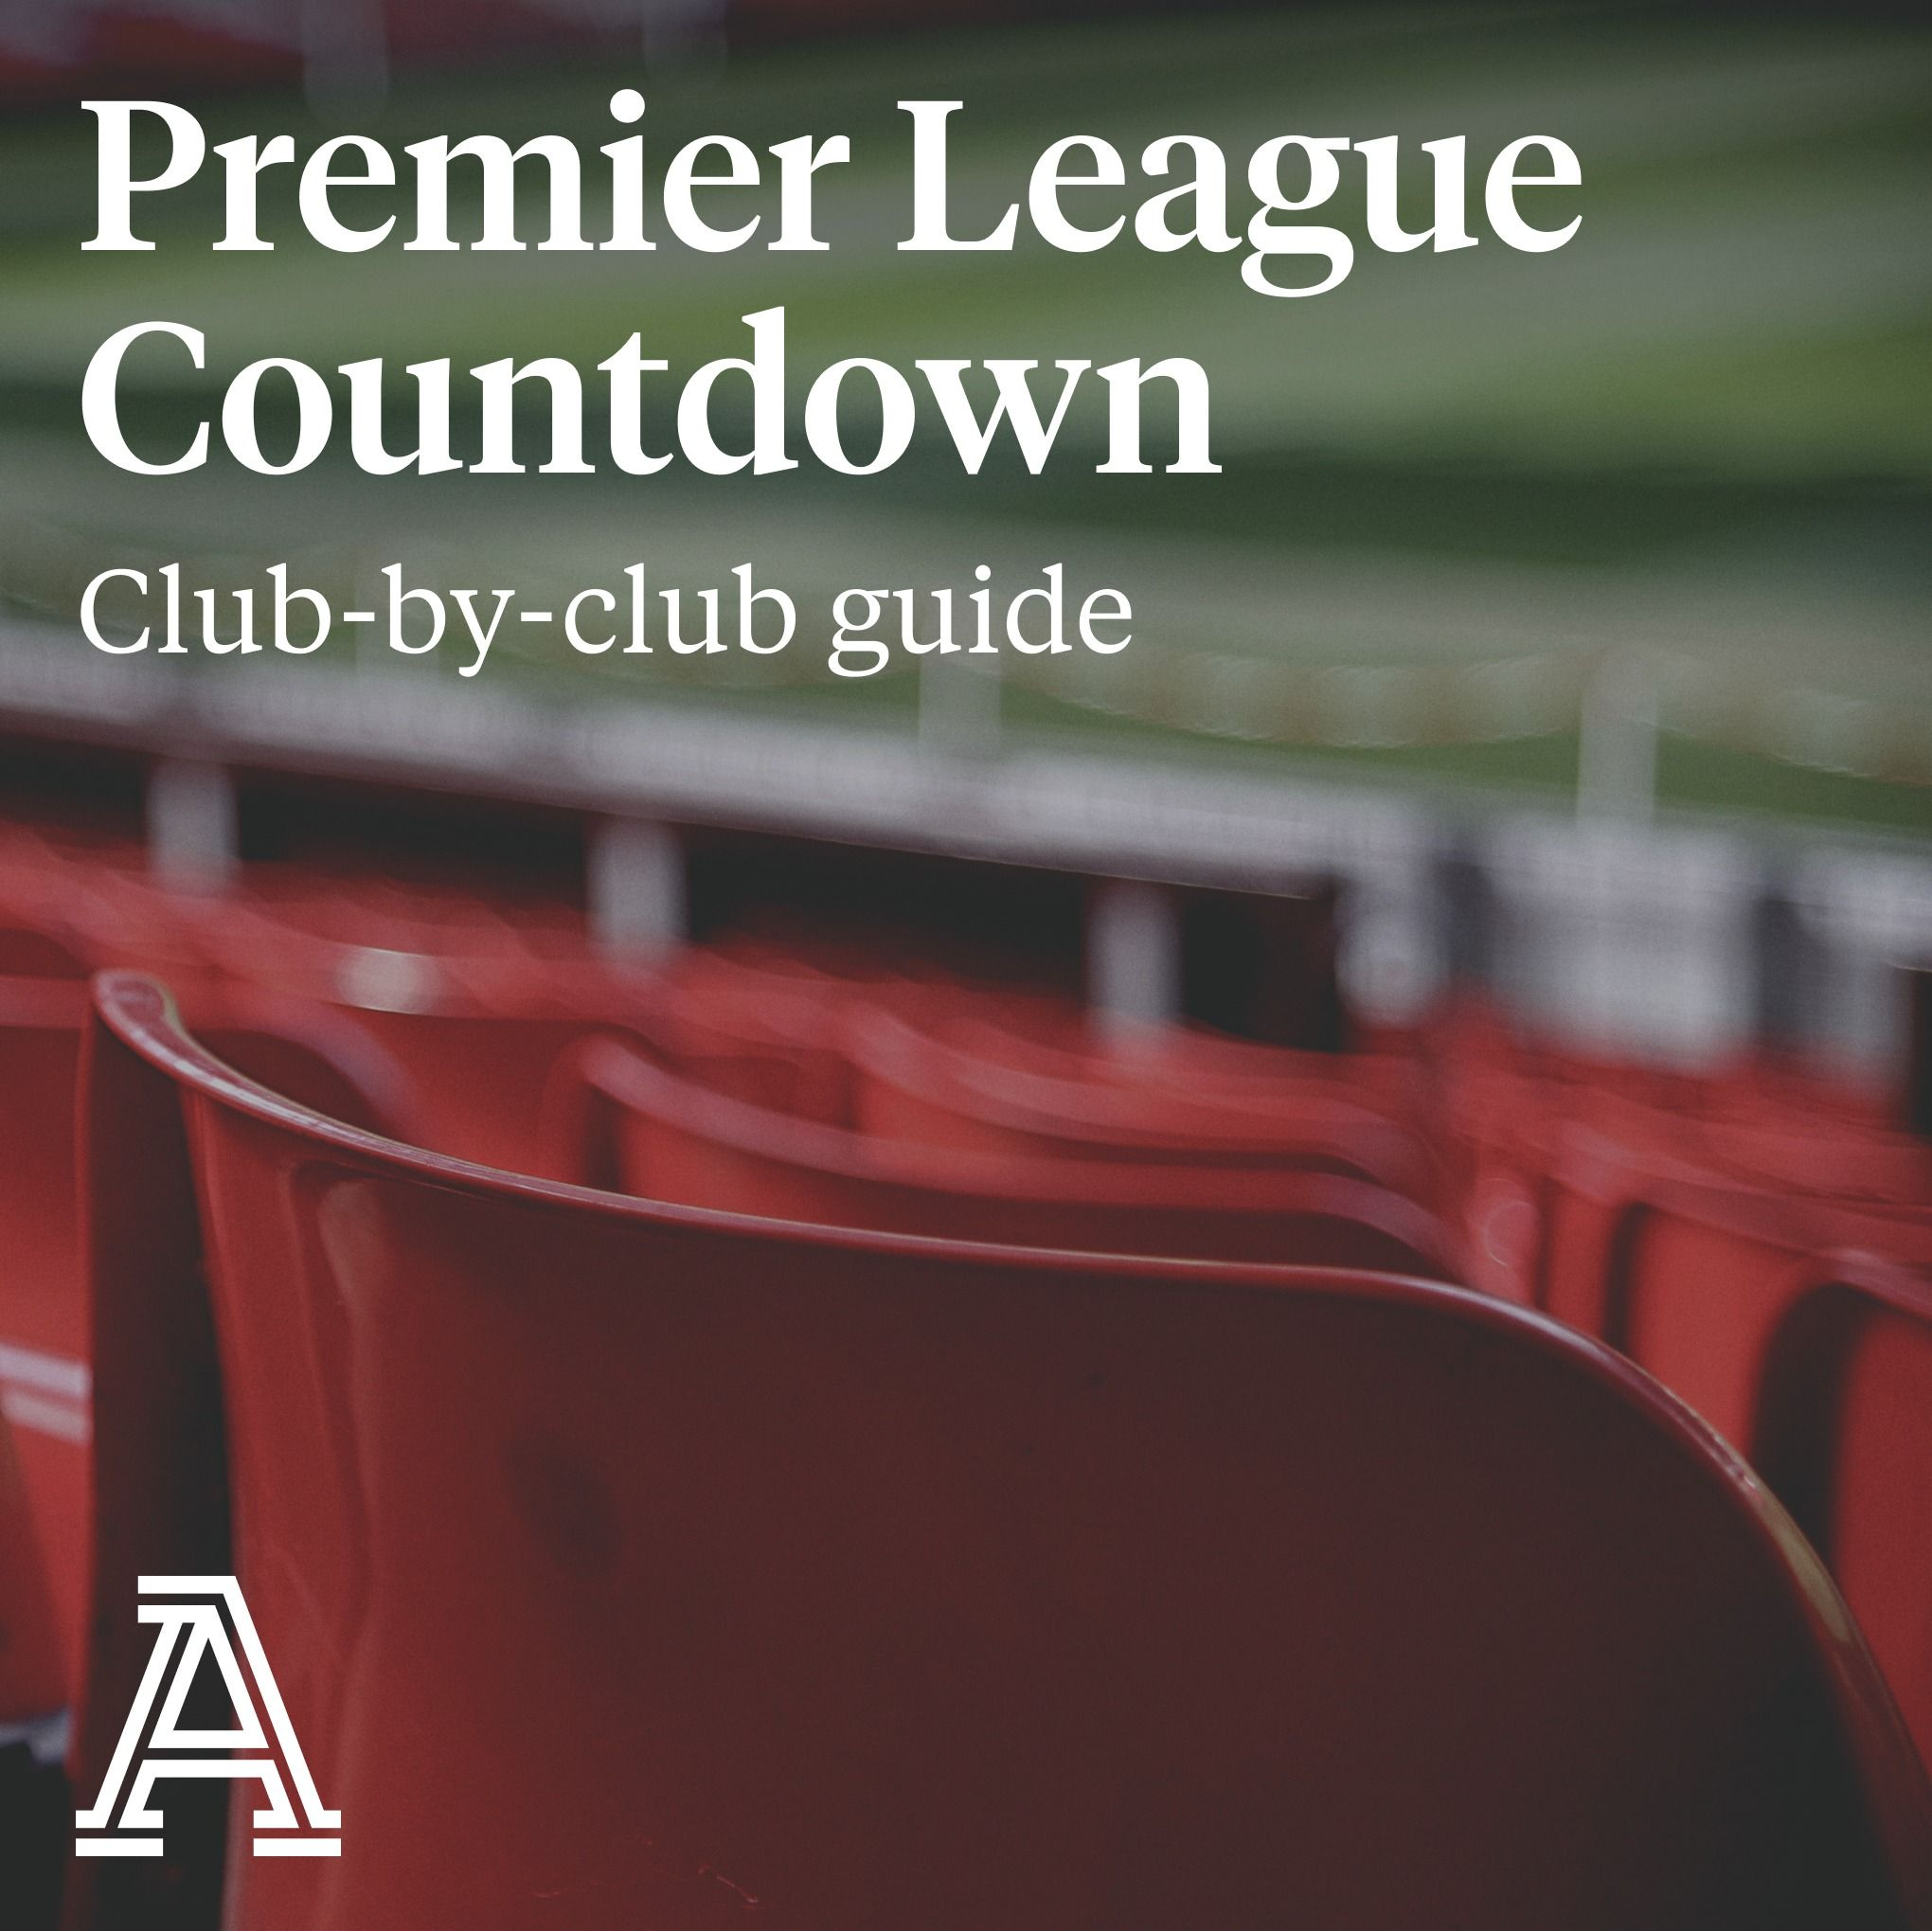 Premier League Countdown - Crystal Palace